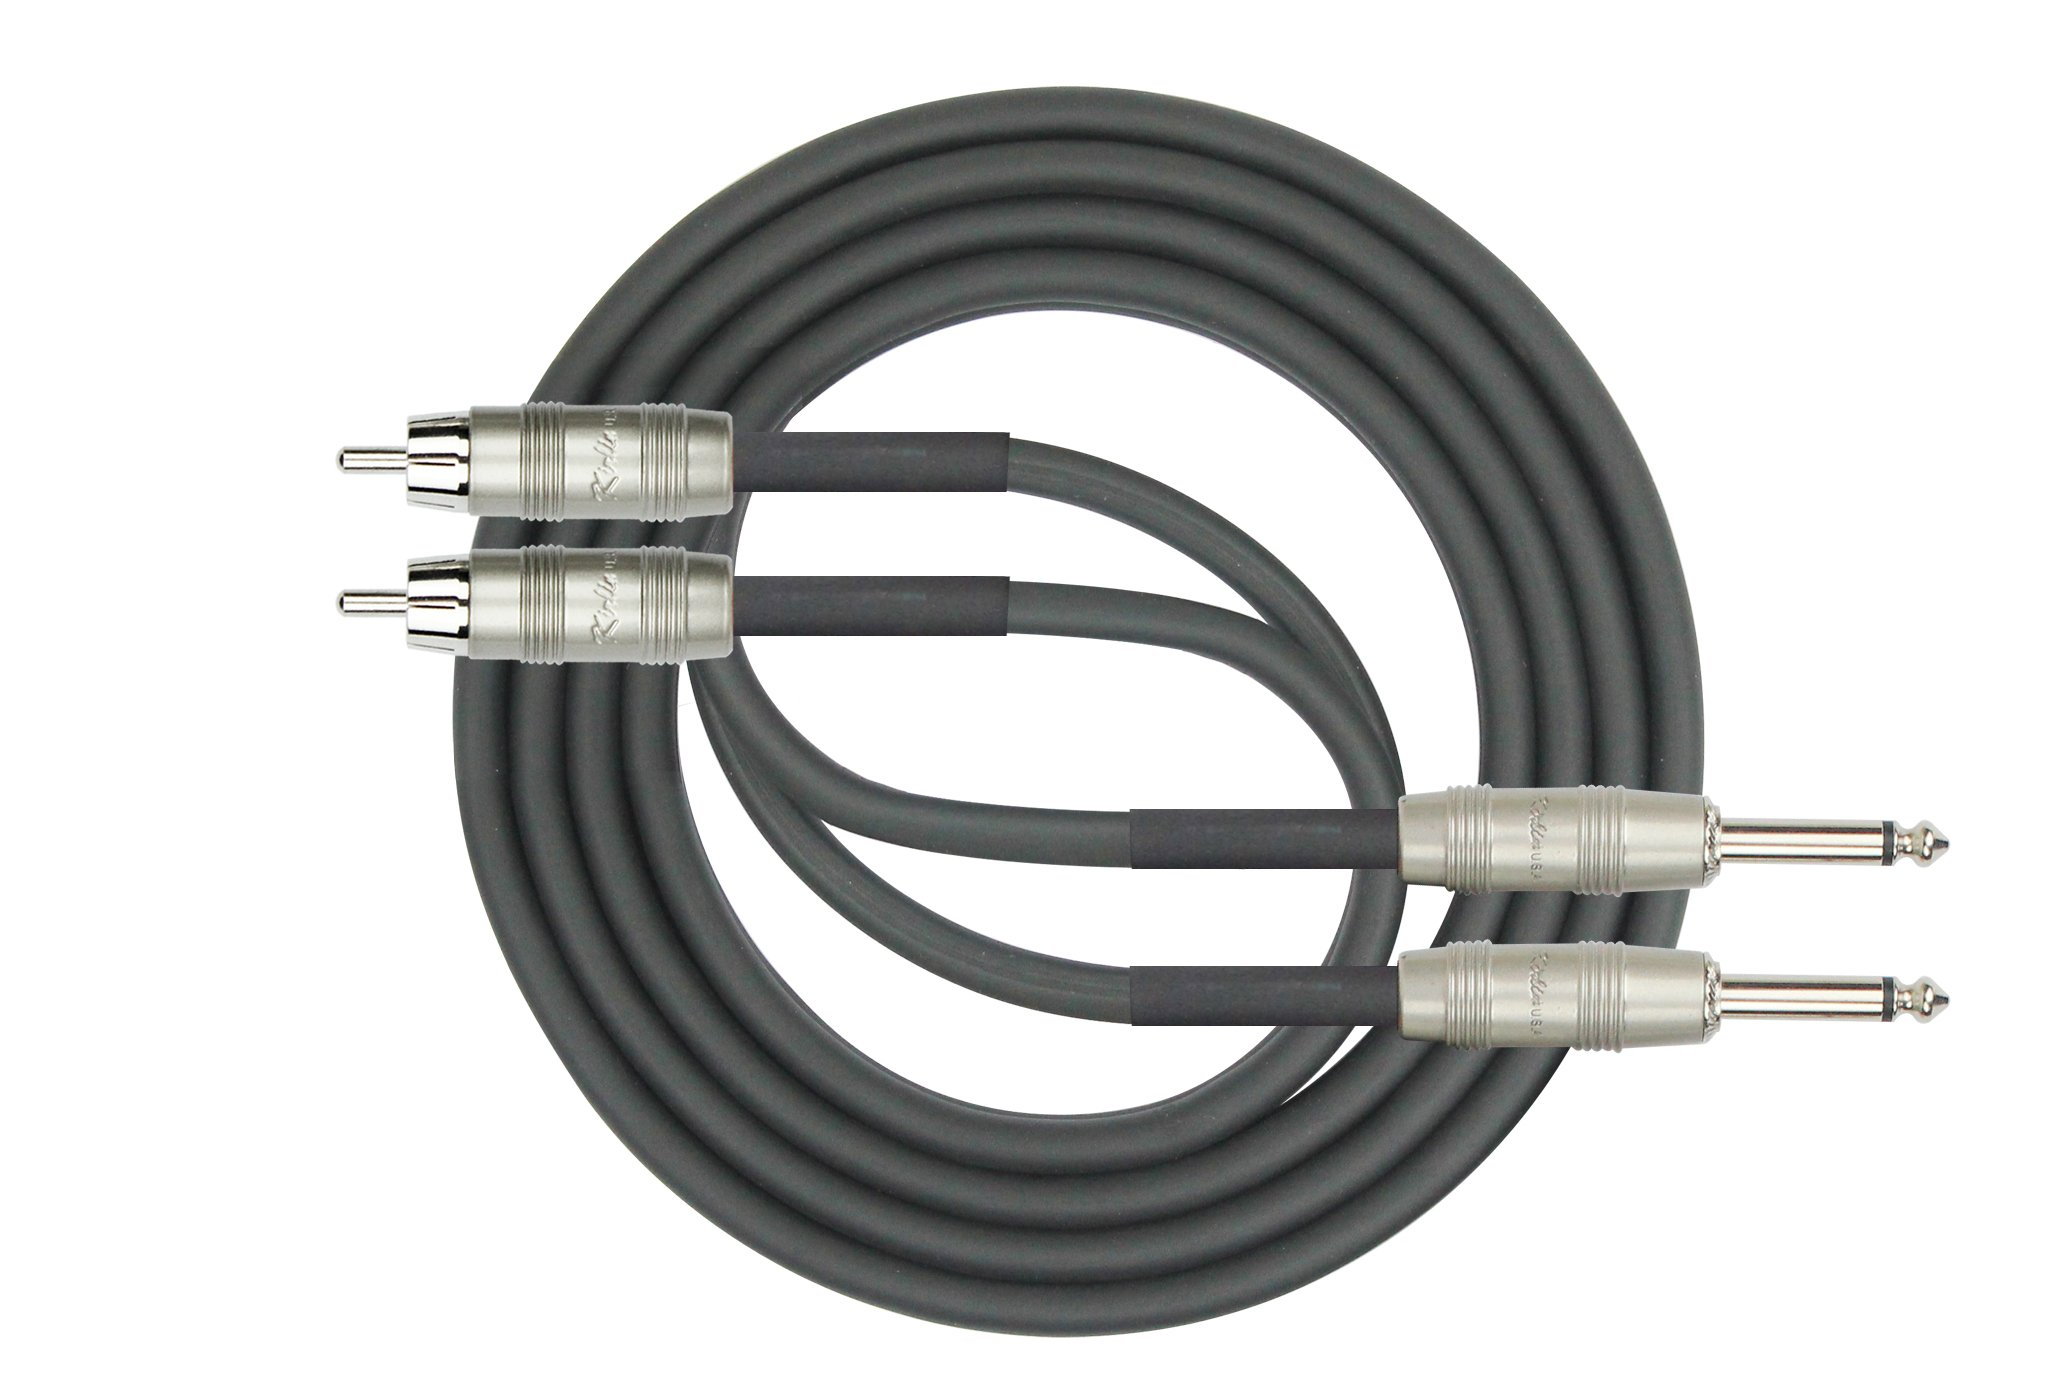 Kirlin Cable AP-403PR-06/BK - 6 Feet - Dual RCA to Dual 1/4-Inch Patch Cable by KIRLIN, KIRLIN CABLE